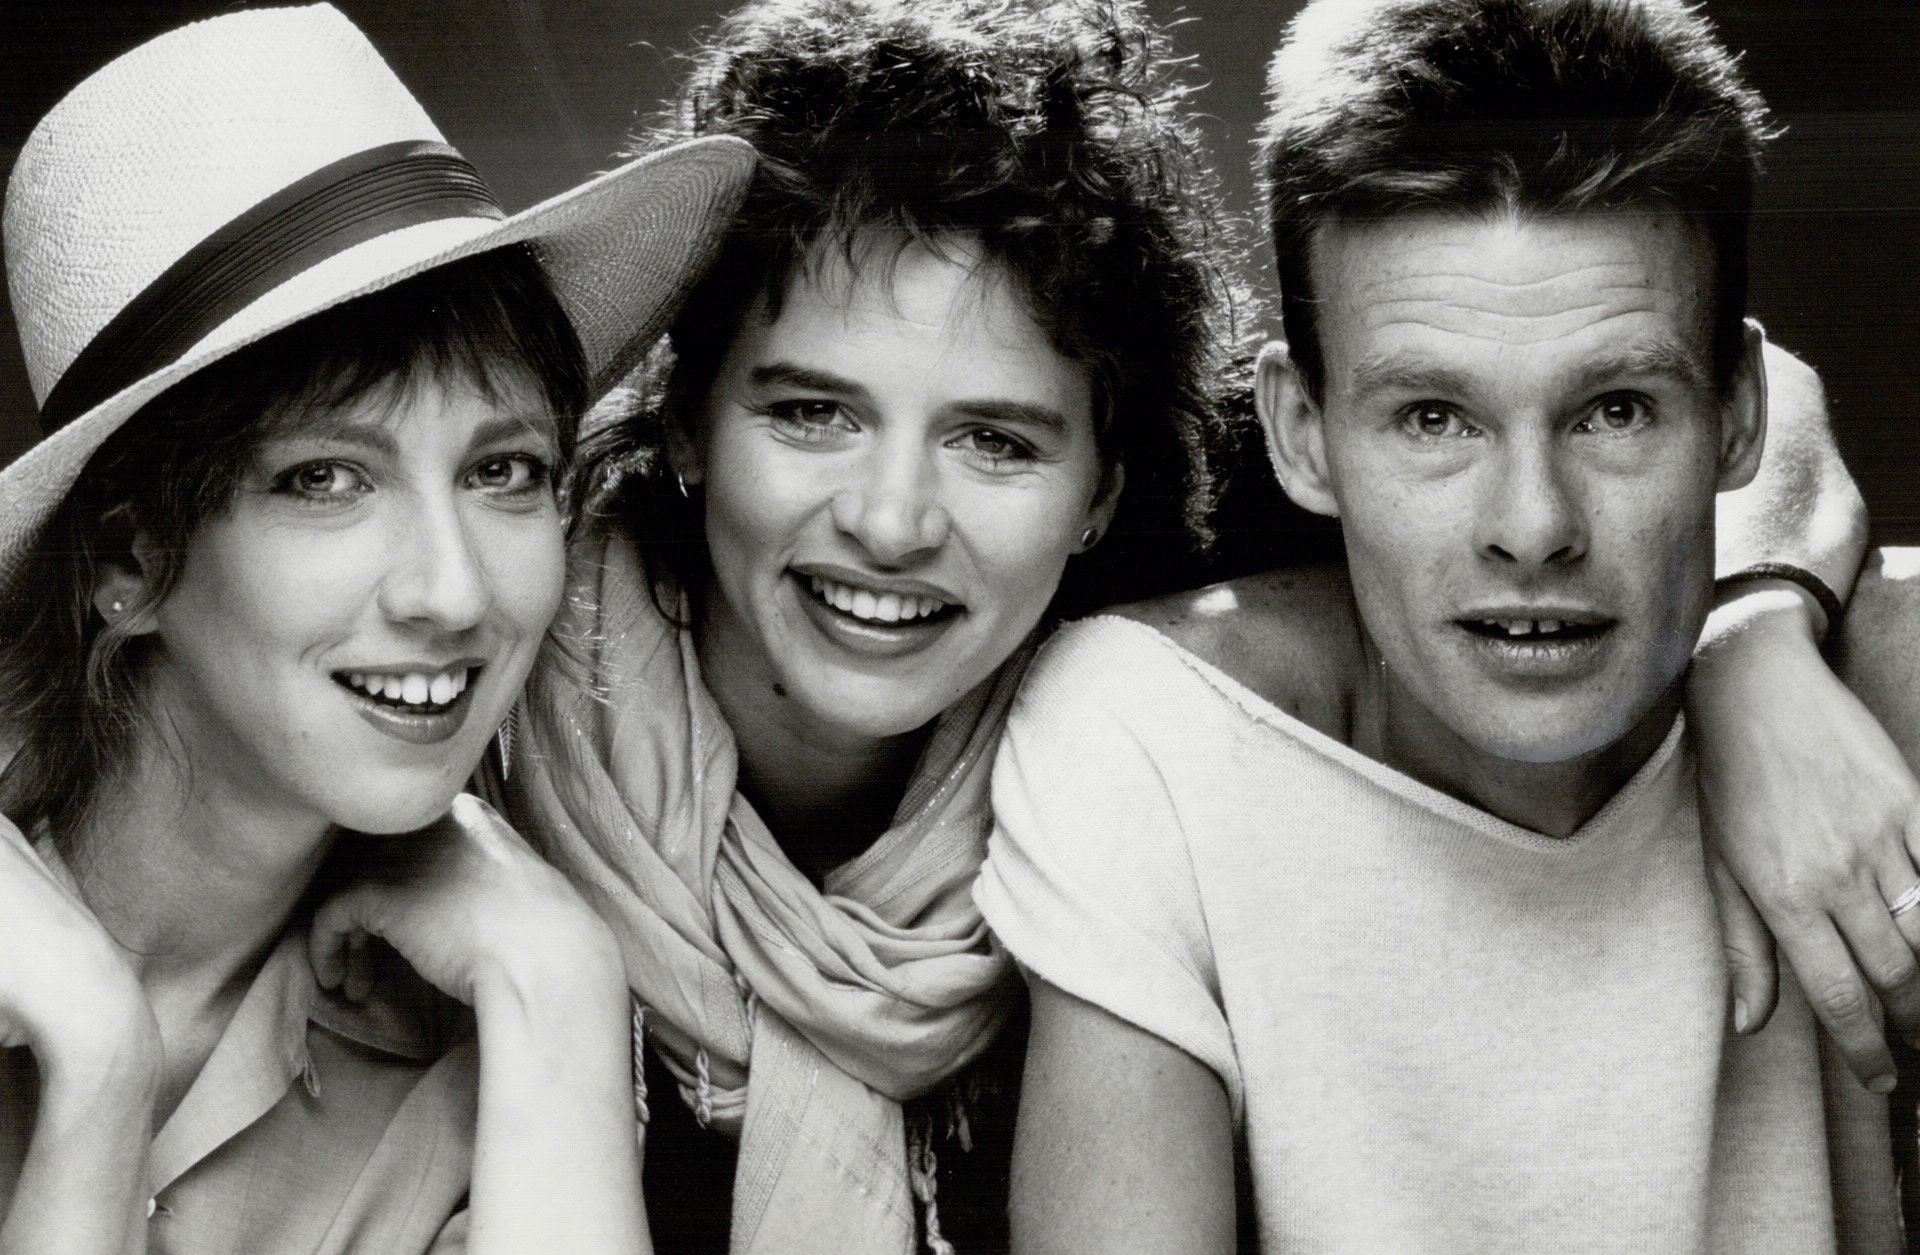 A portrait of three people, two women and one man. The woman on the far left is wearing a sun hat.